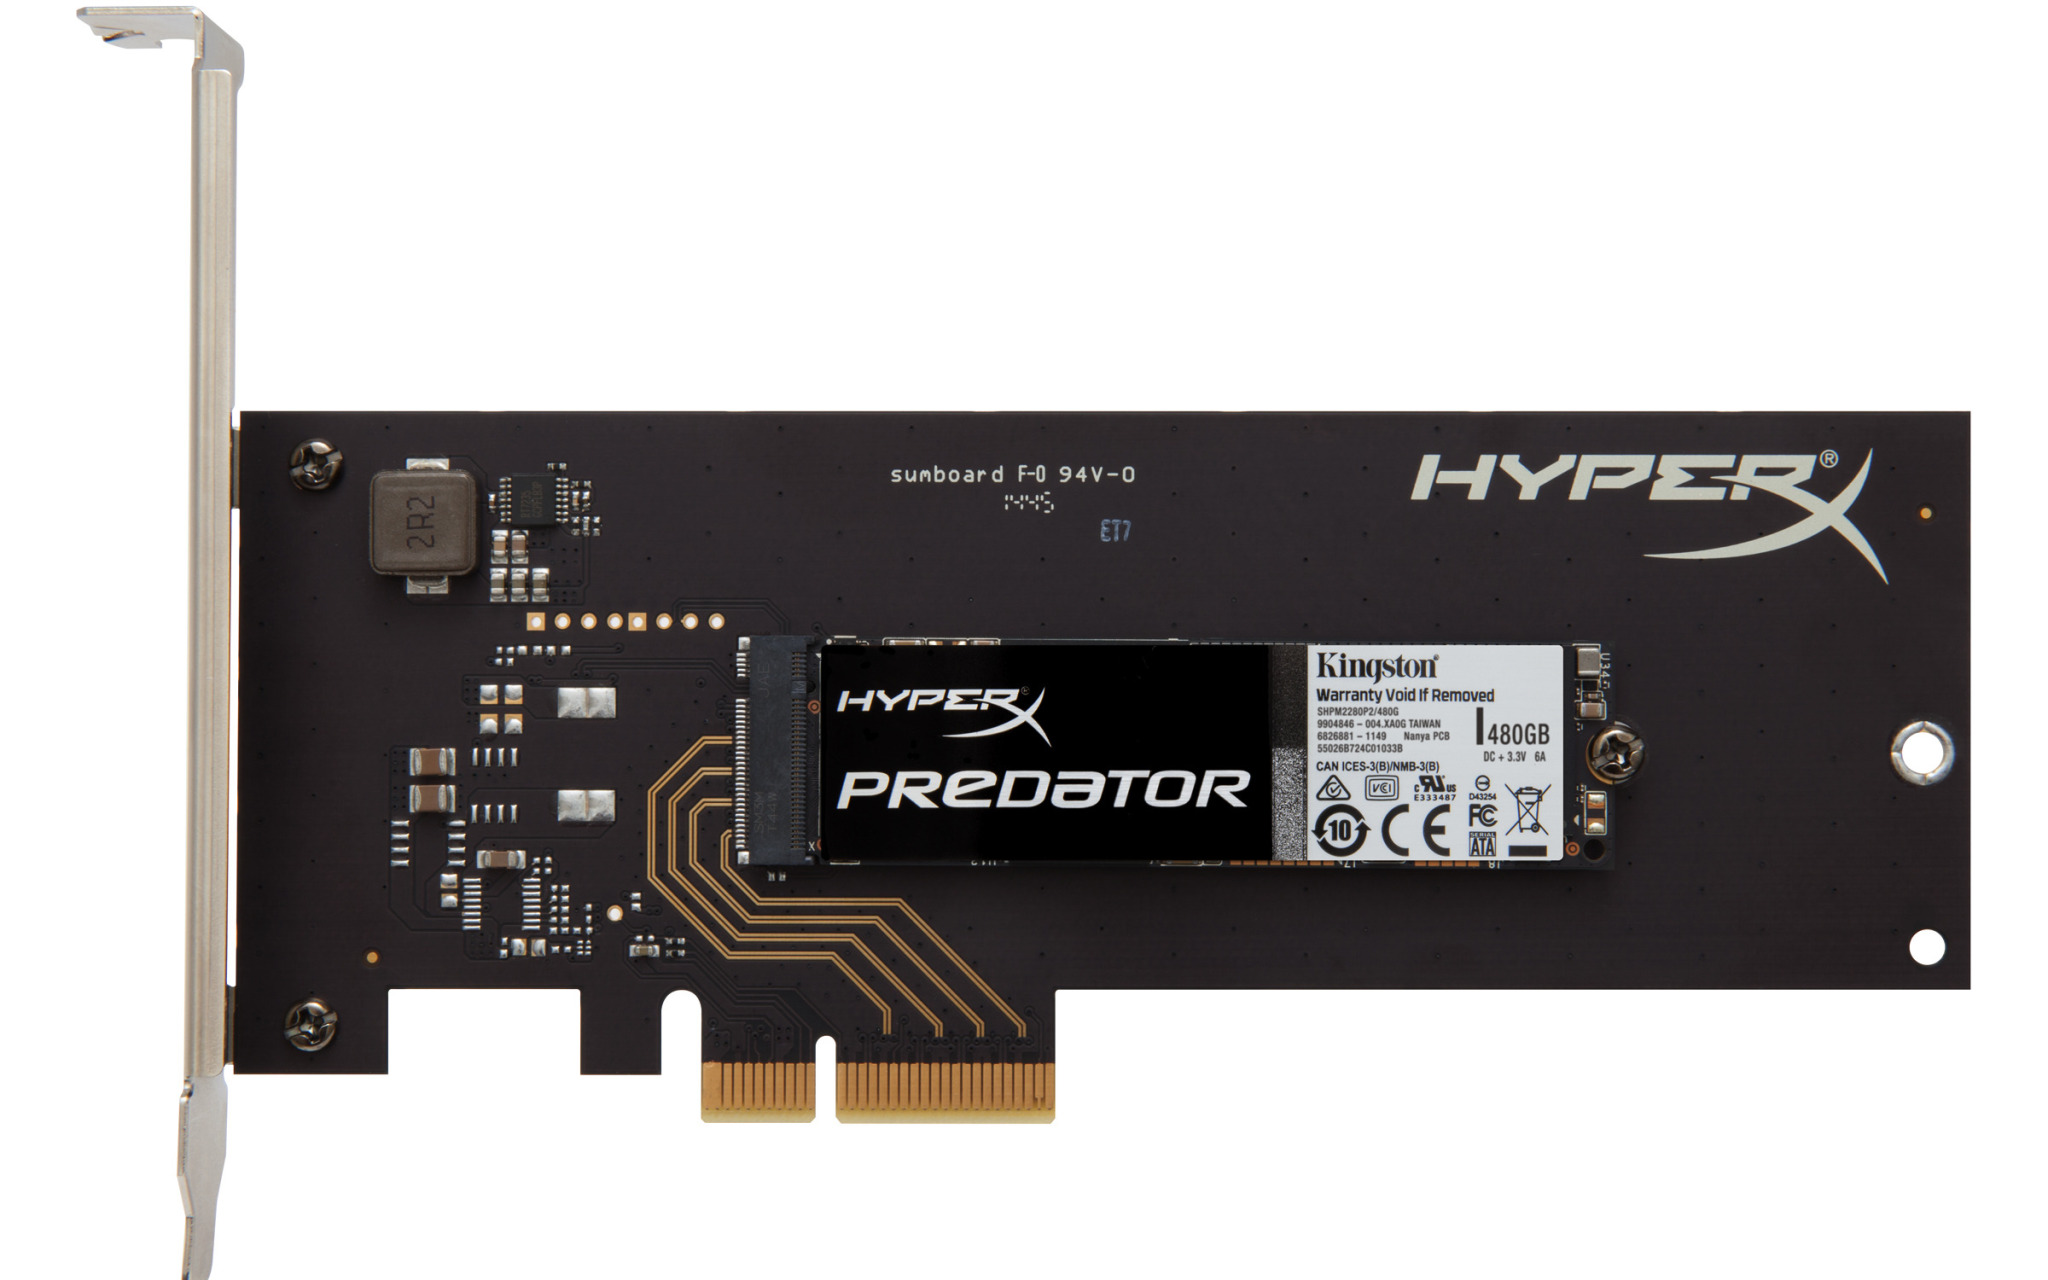 kingston hyperx predator m2 pcie